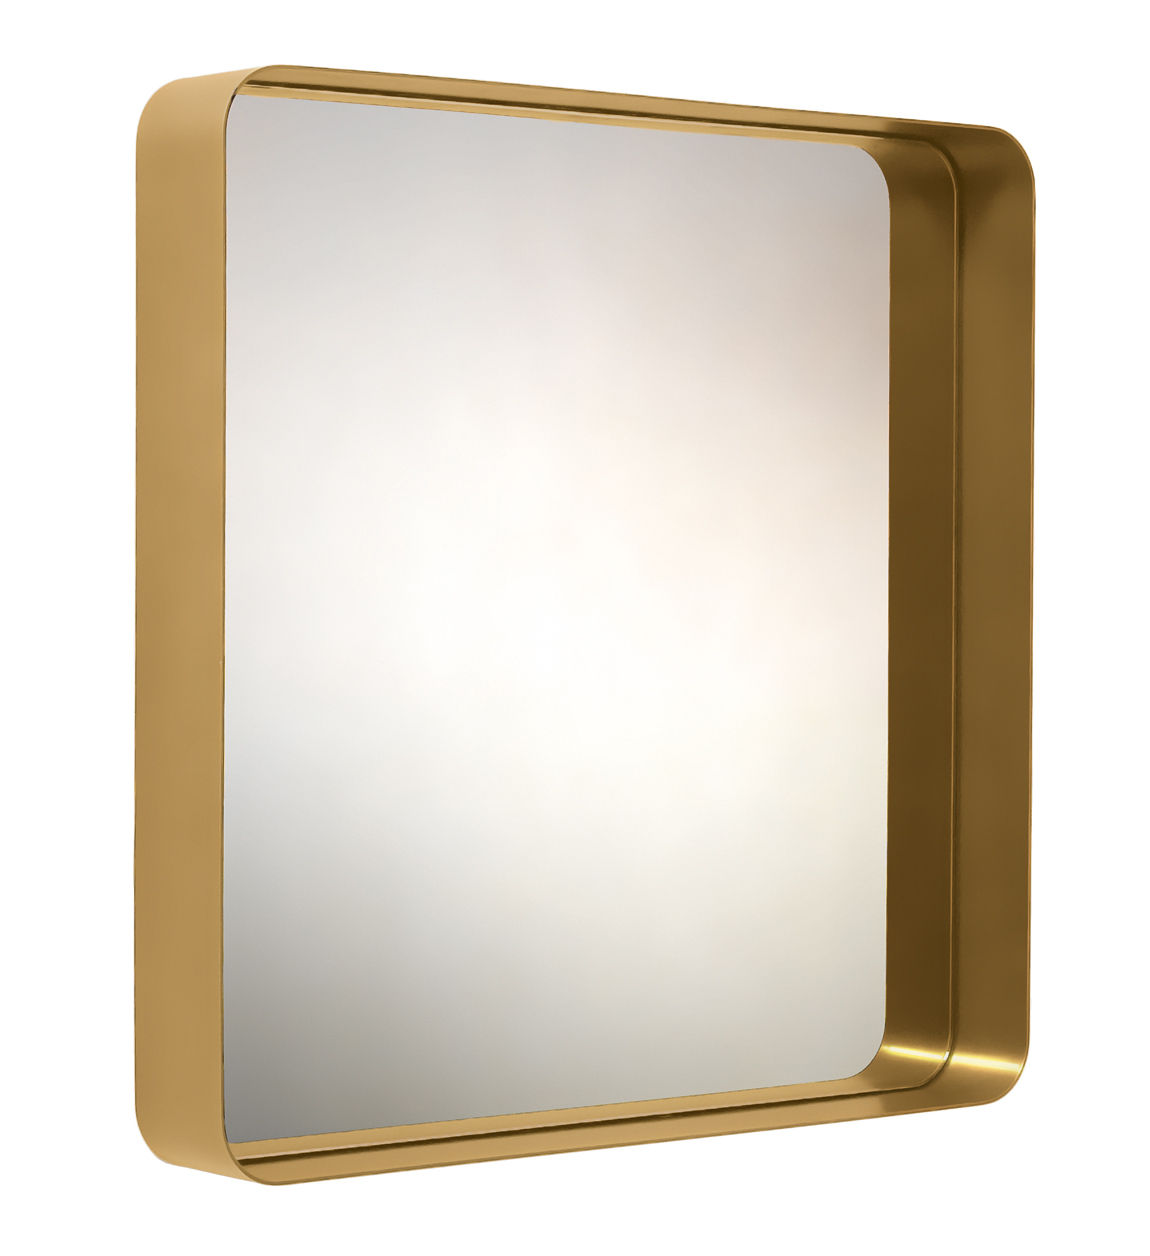 Decoration - Mirrors - Cypris Wall mirror - 70 x 70 cm by ClassiCon - Gold / Silver glass - Glass, Solid brass